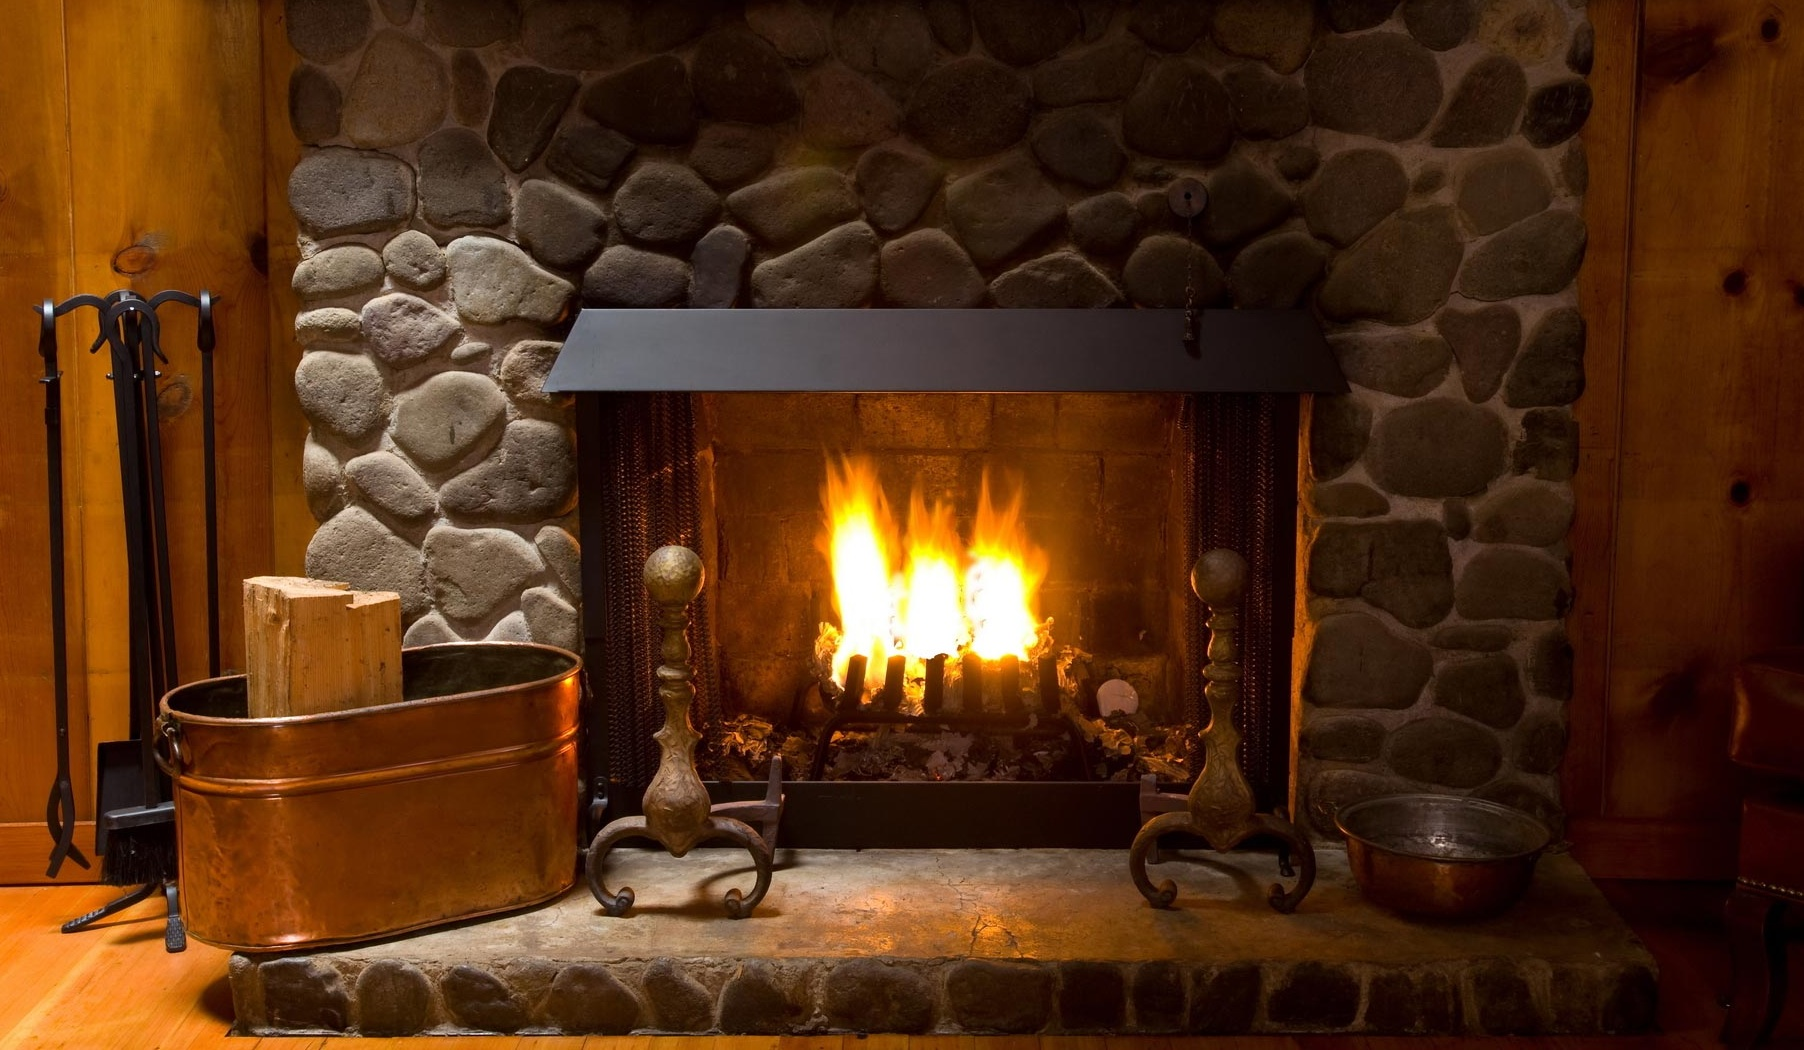 Fireplace Alternatives Consider These Wood Heating Alternatives To Save Money This Winter